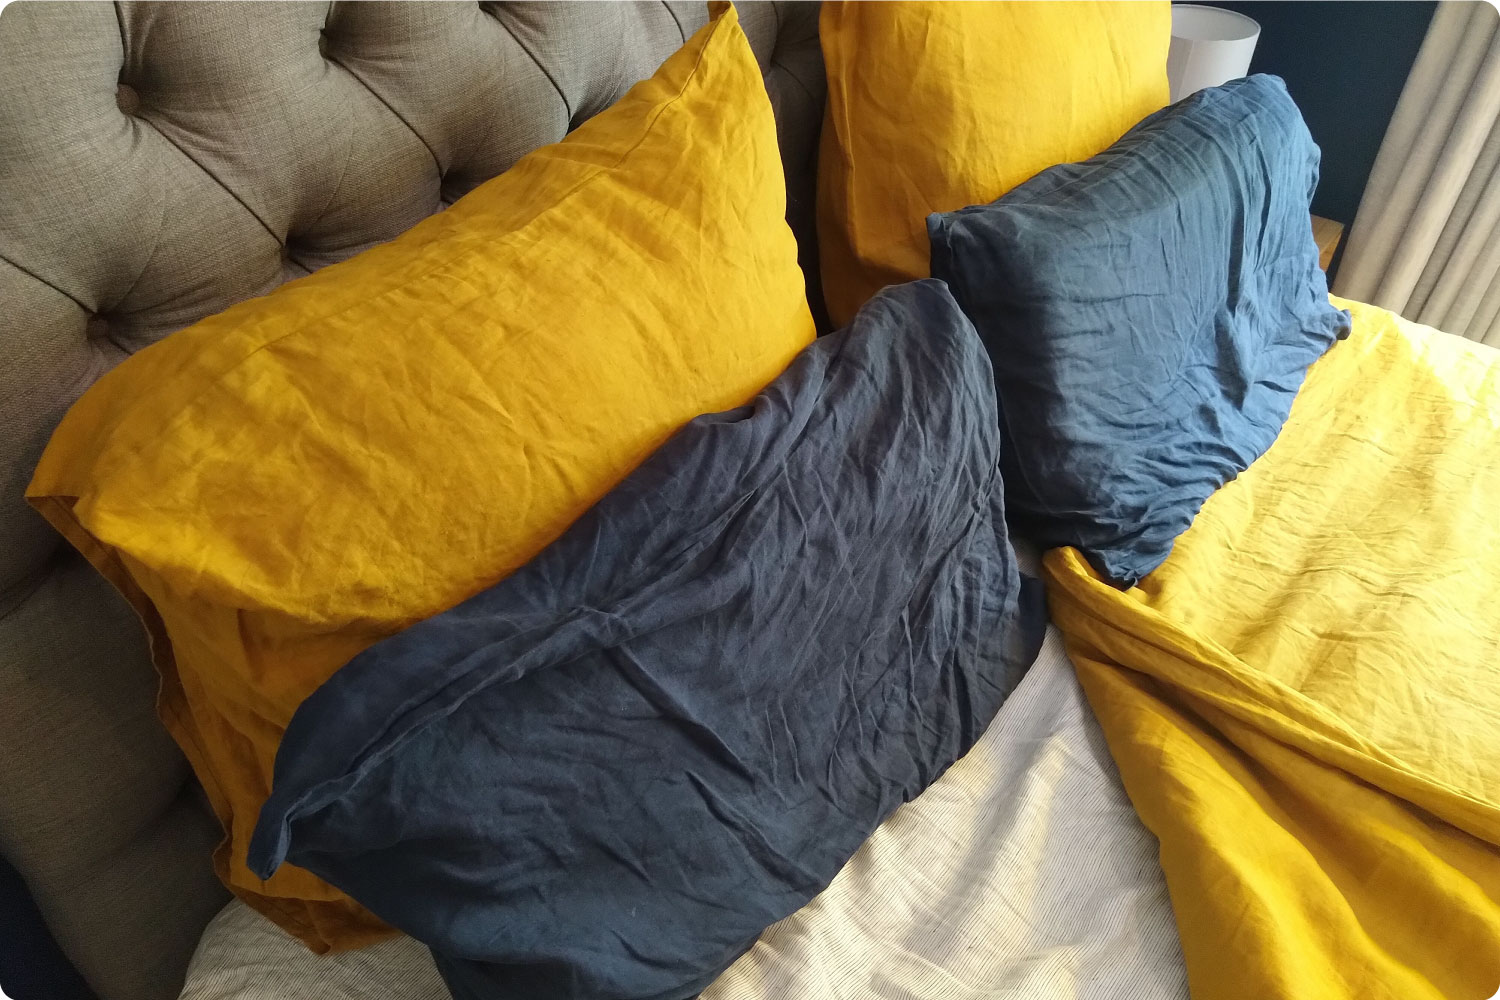 Bed Threads flax linen sheets in Ink and Turmeric